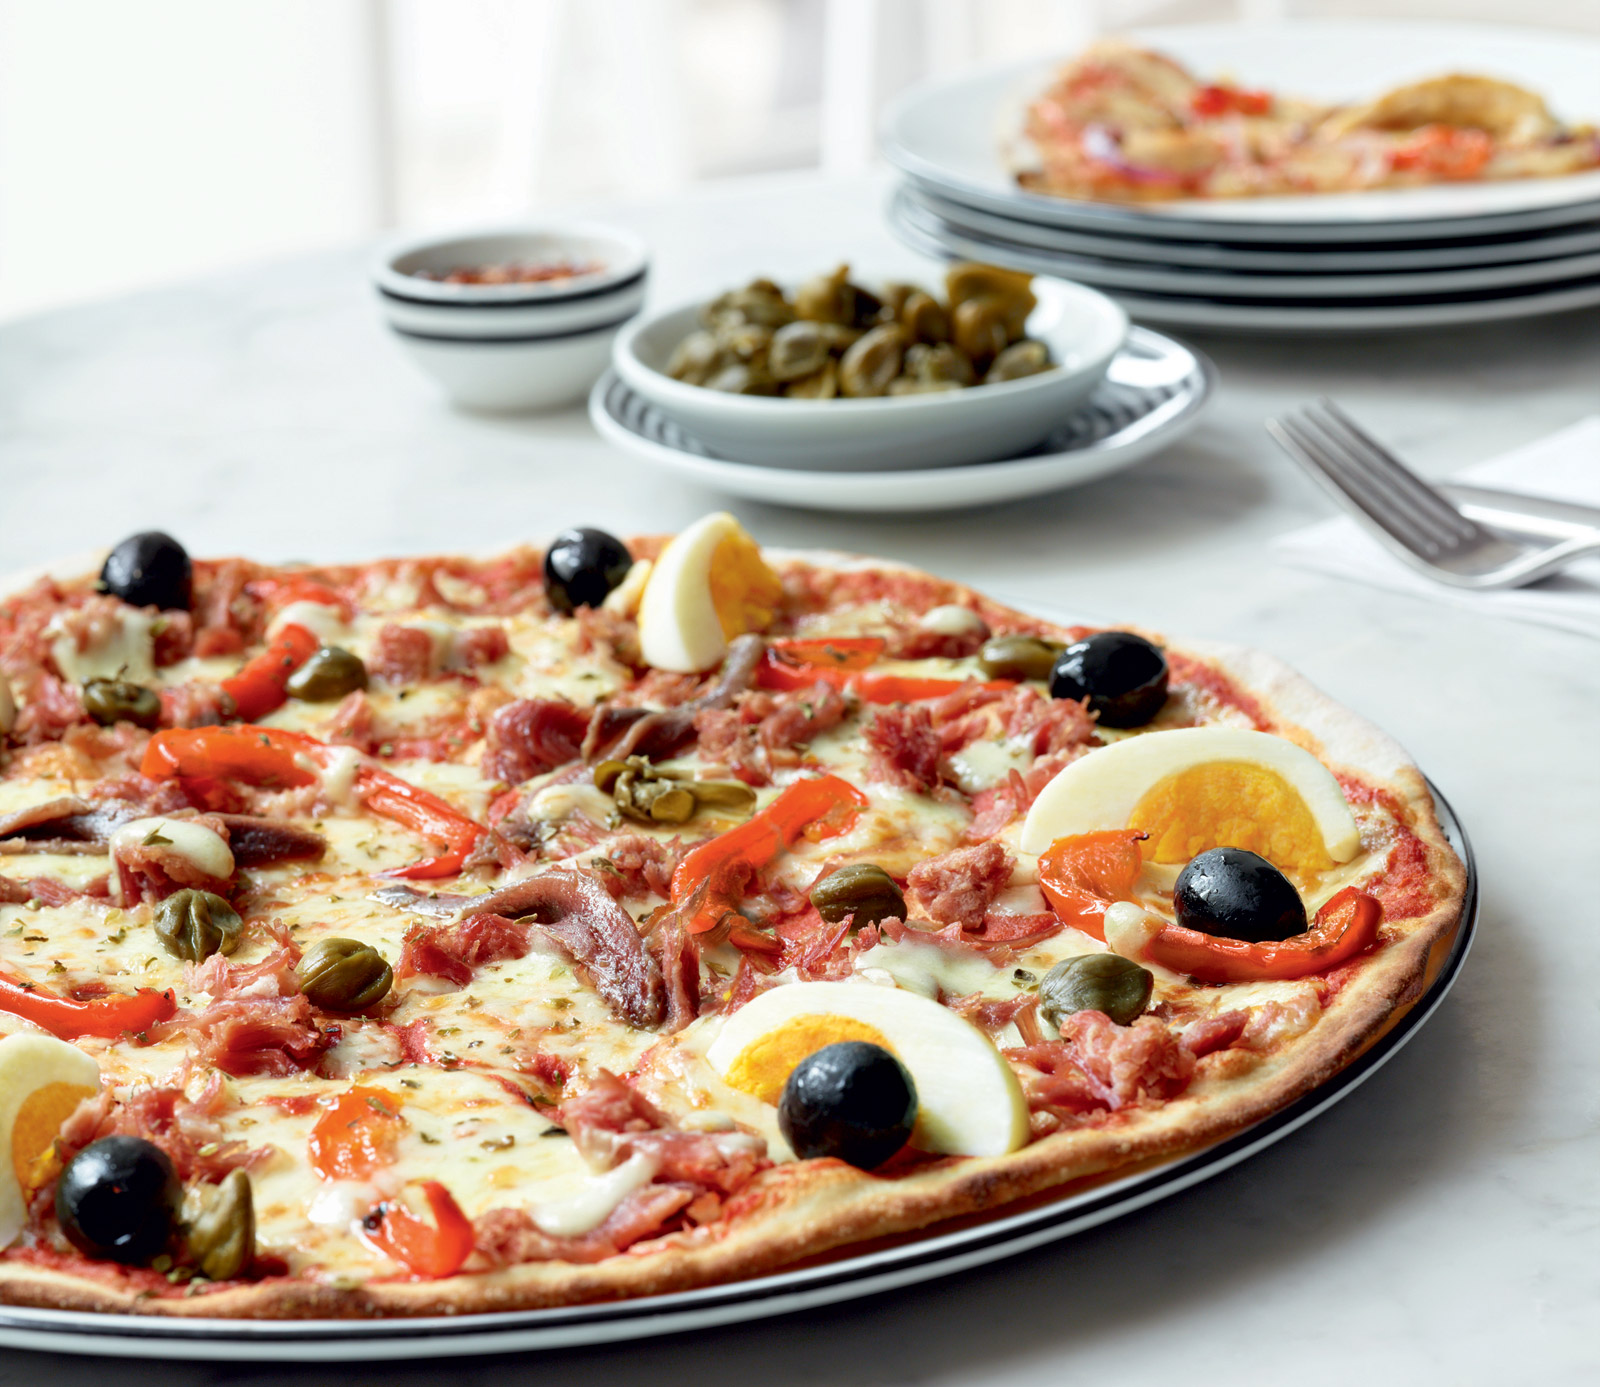 PizzaExpress Wilmslow - Cheshire